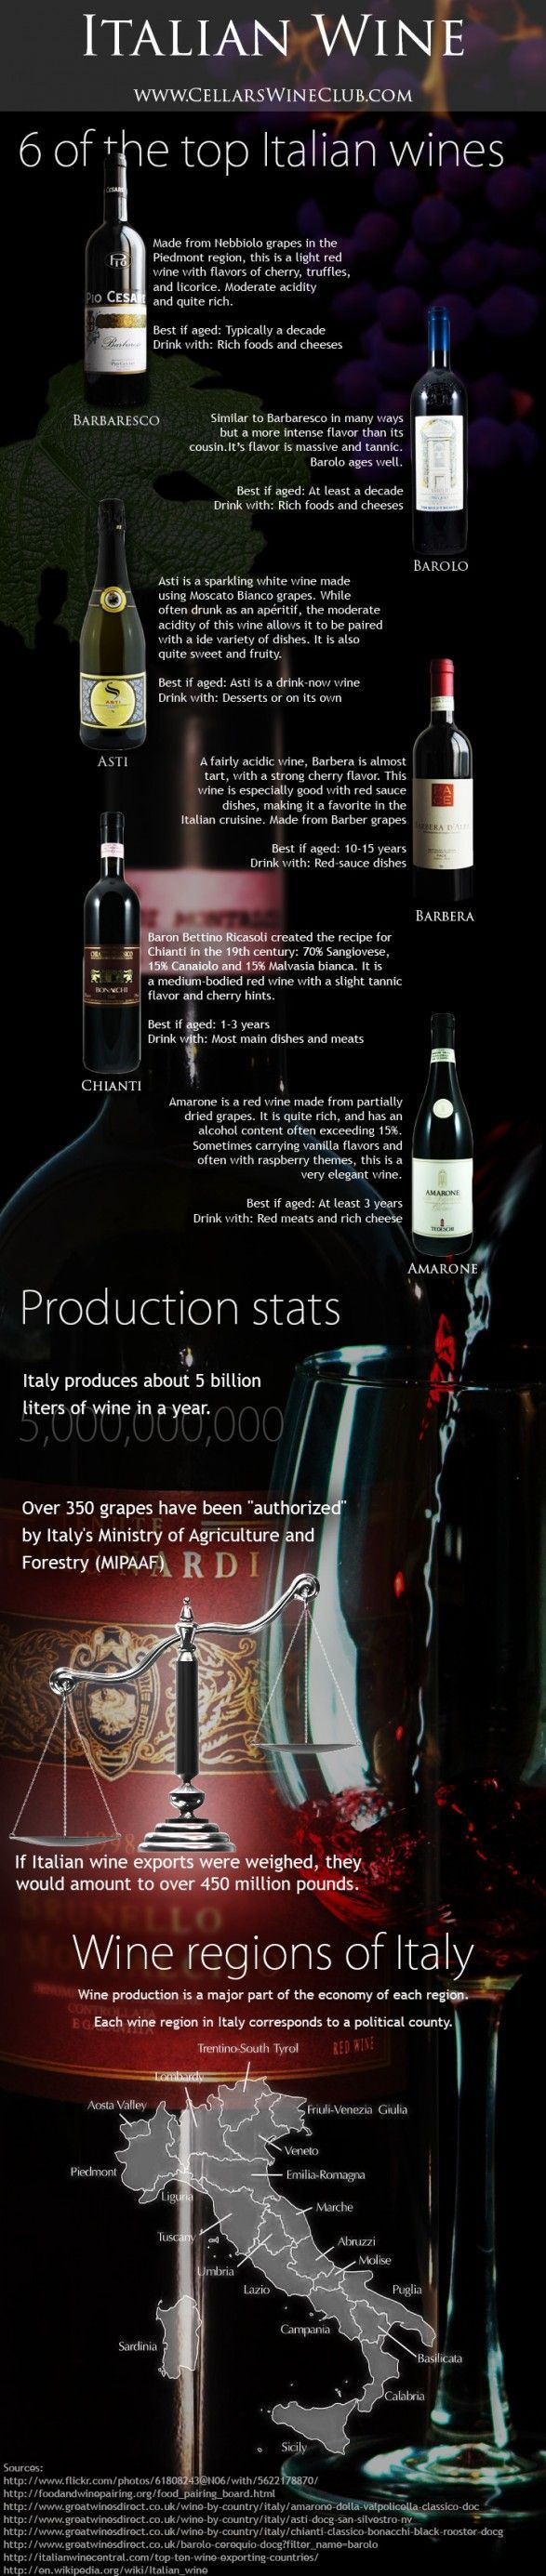 I fell in love with wine in Italy. Wine is what you drink at many meals. Here are Top Italian Wines.